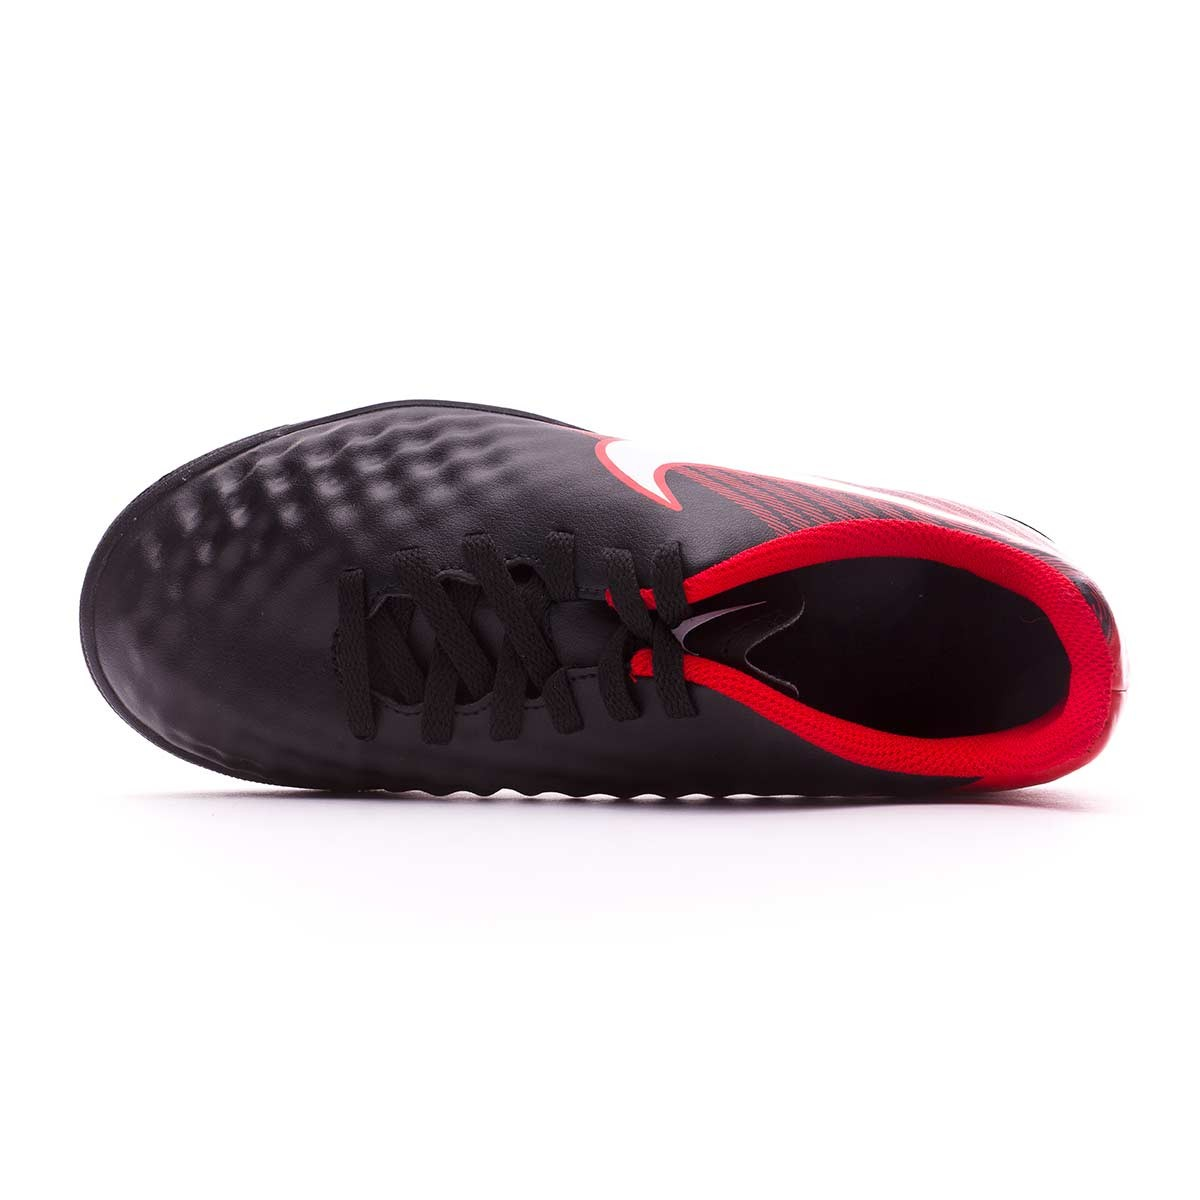 Futsal Boot Nike Kids MagistaX Ola II IC Black-White-University red -  Soloporteros es ahora Fútbol Emotion 18b67125e